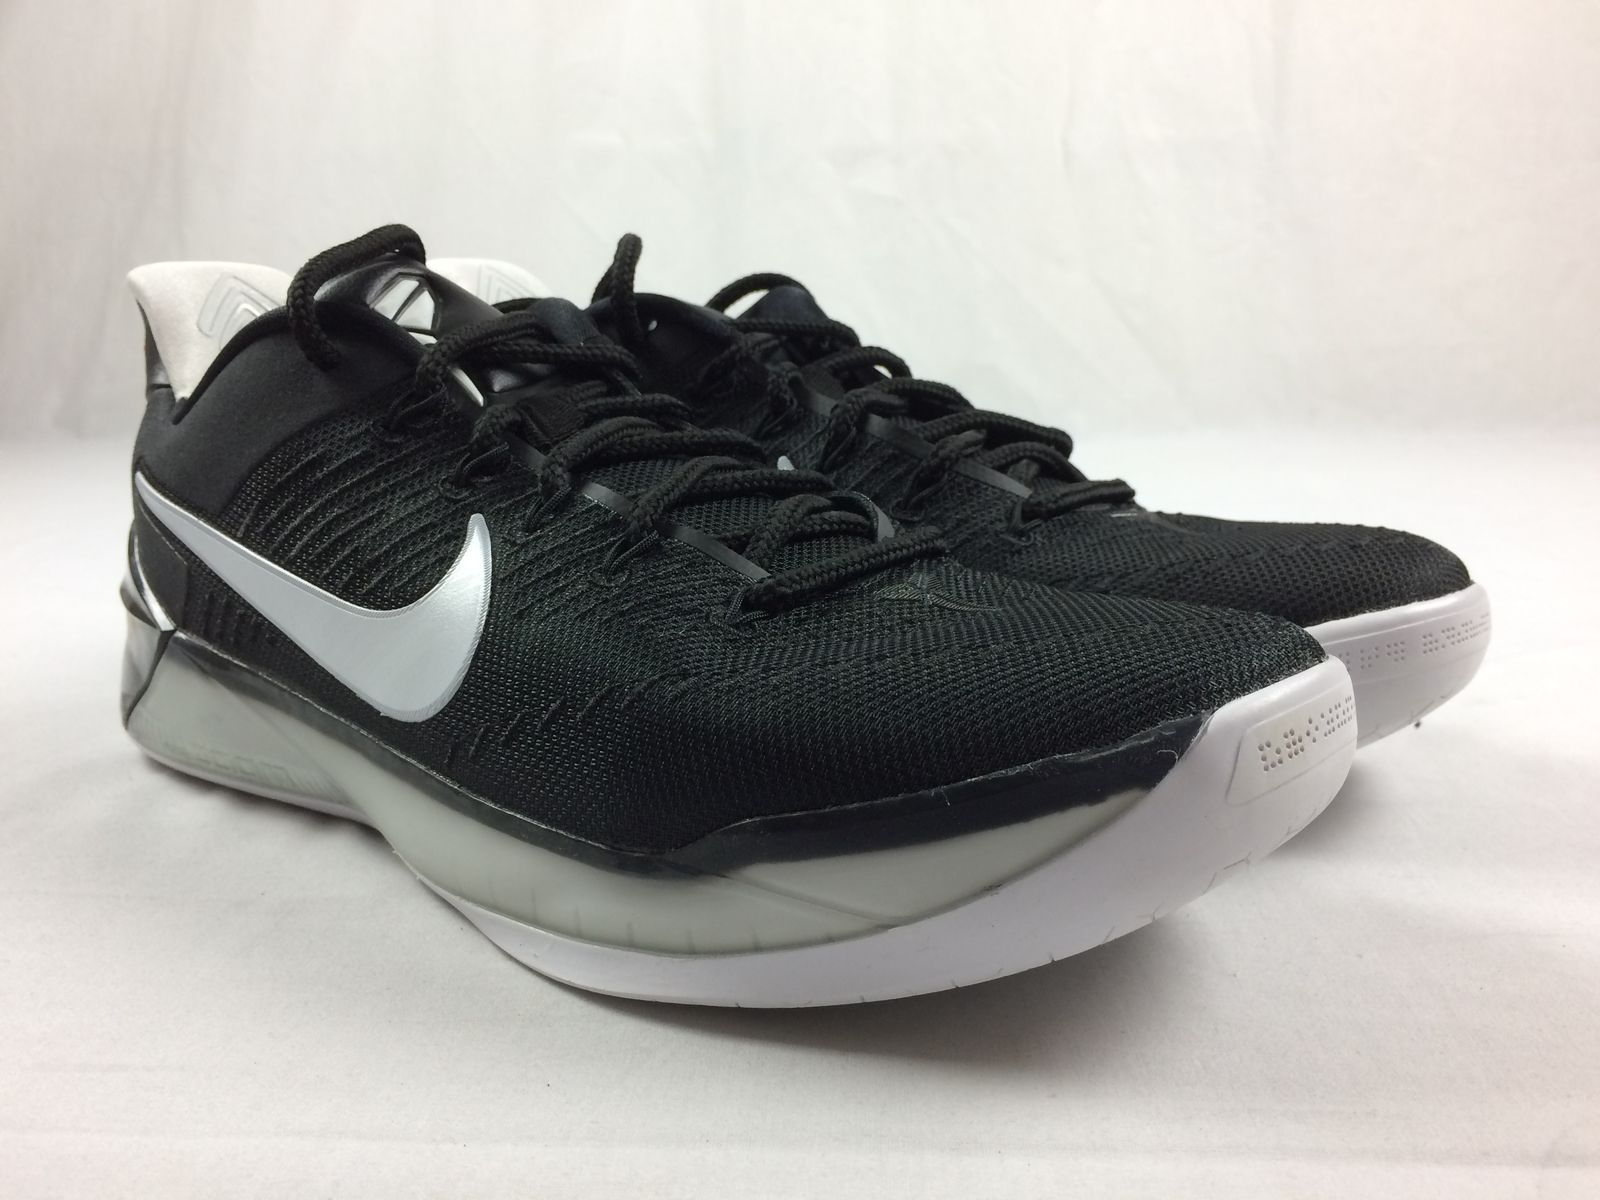 2645c1b7410 Details about Nike Kobe A.D. - Black White Basketball Shoes (Men s Size  13.5) - Used